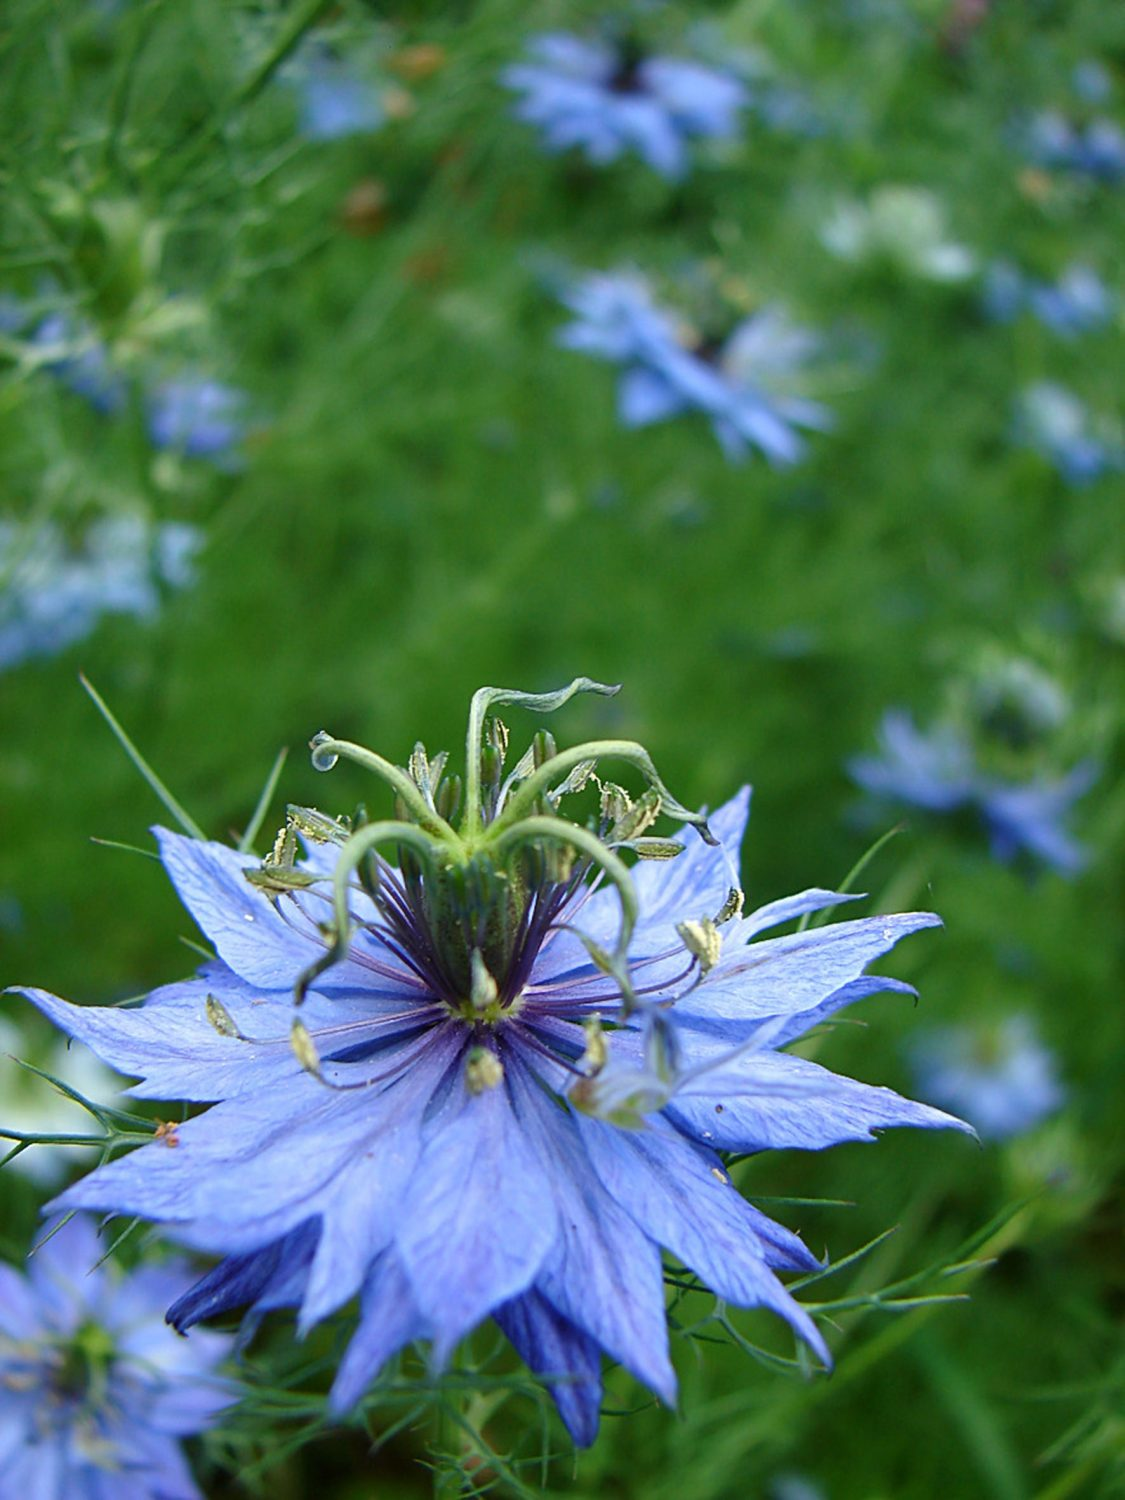 Nigella attract beneficial insects into the garden